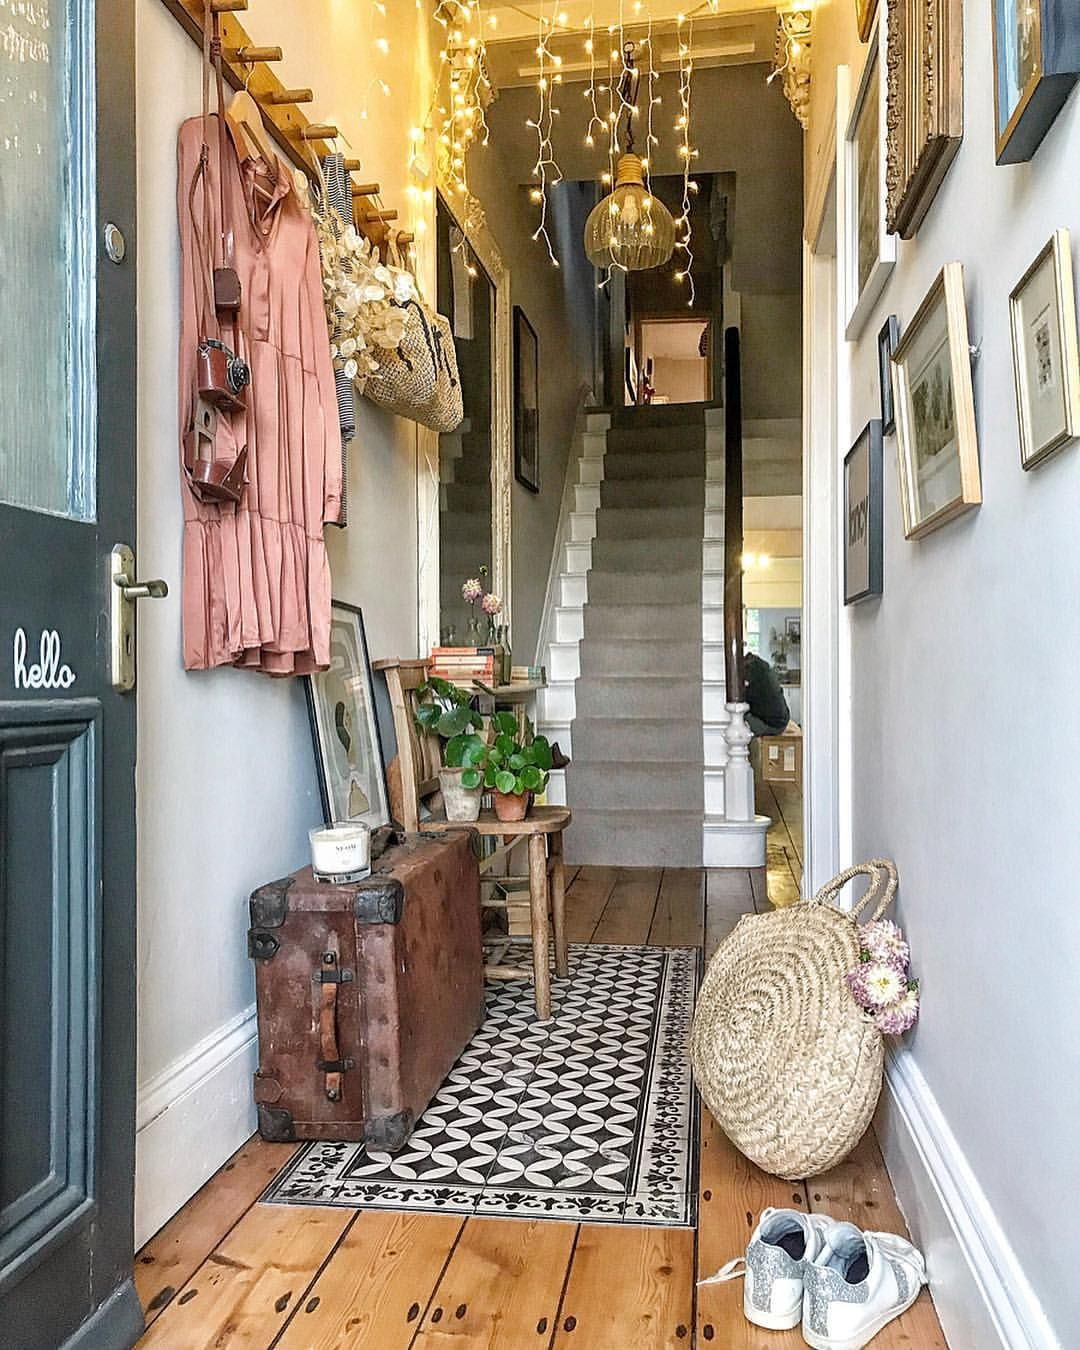 Victorian House Interior Design Ideas: Pin By Brenda Lacy On Houses